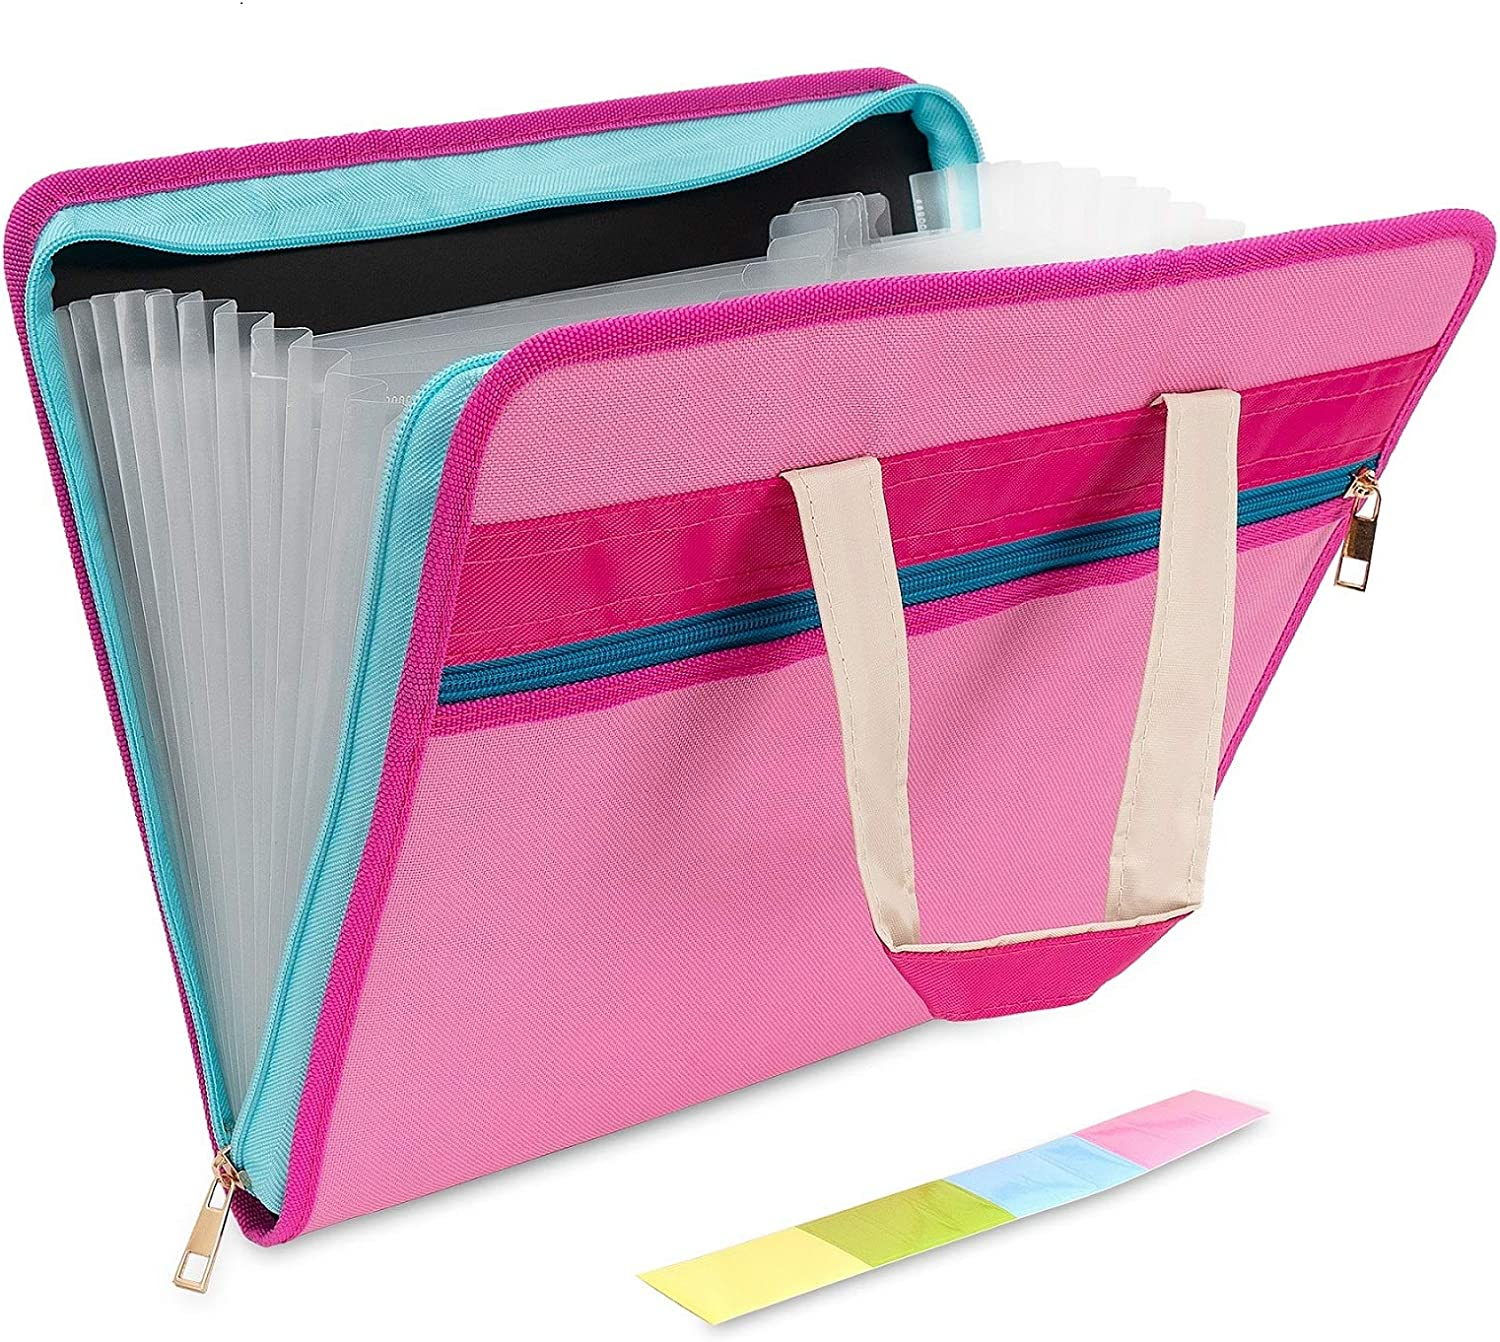 Caosent Portable A4 File Organizer Waterproof Oxford Fabric Zipper Closure Document Organizer with Handle Double Zipper 13+1 Pockets Pink